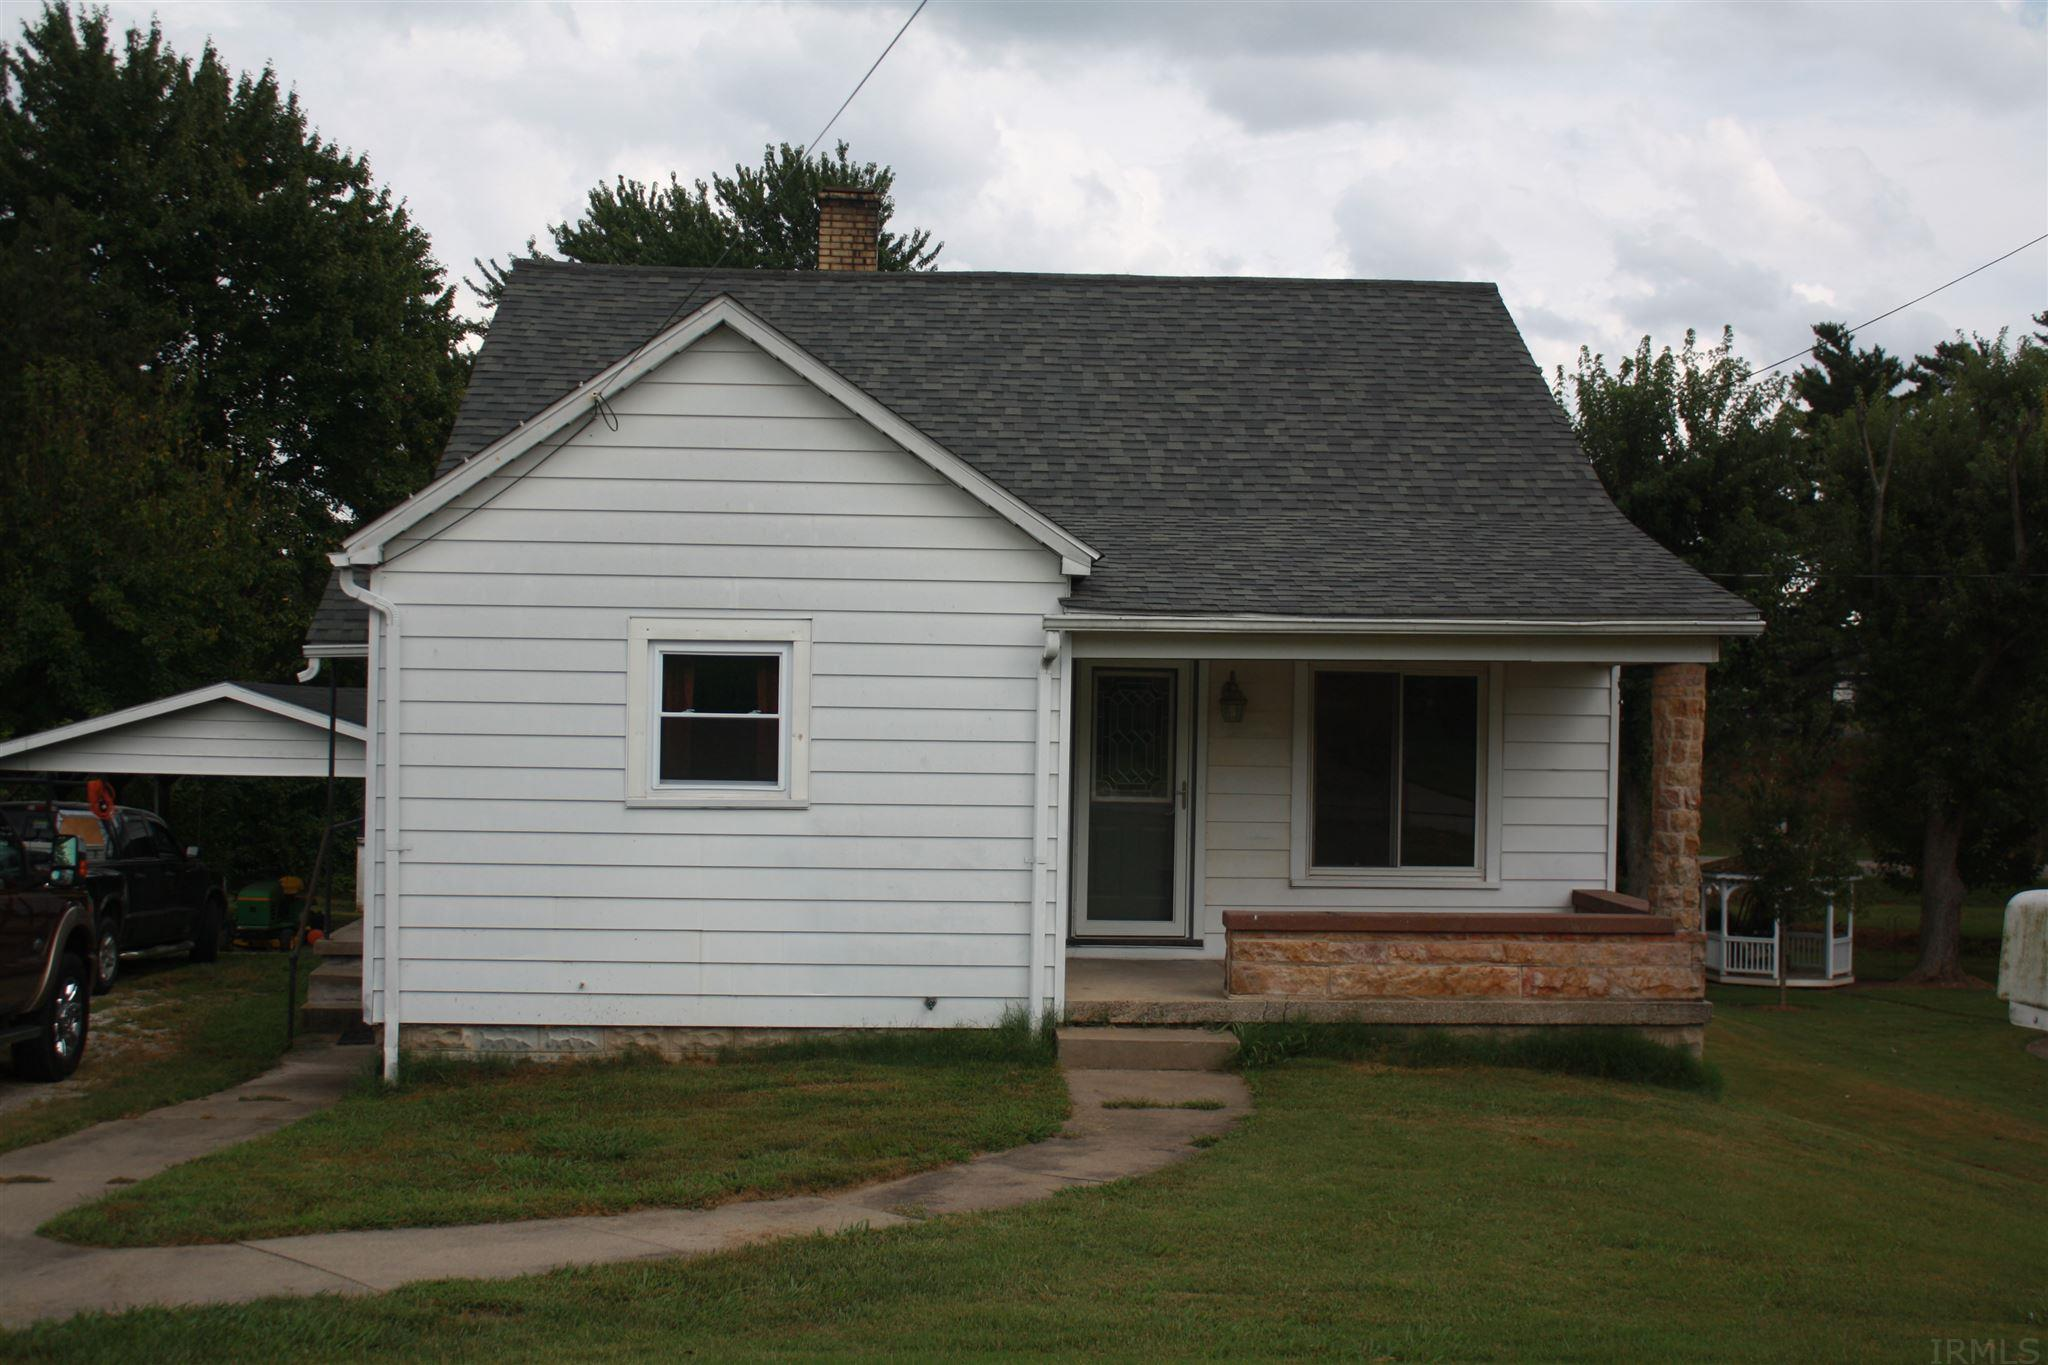 This home is full of character. It has original hardwood floors that have been refinished, new double hung windows in most of the house that have a lifetime warranty, new front and side doors, and huge closets throughout the house. HVAC system is only 6 years old and has a hypoallergenic adapter included. This home even comes with a 32 inch cut John Deere riding mower. The Stone used on the front porch is original stone from the historic St. Meinrad Archabbey. Make this your home today!